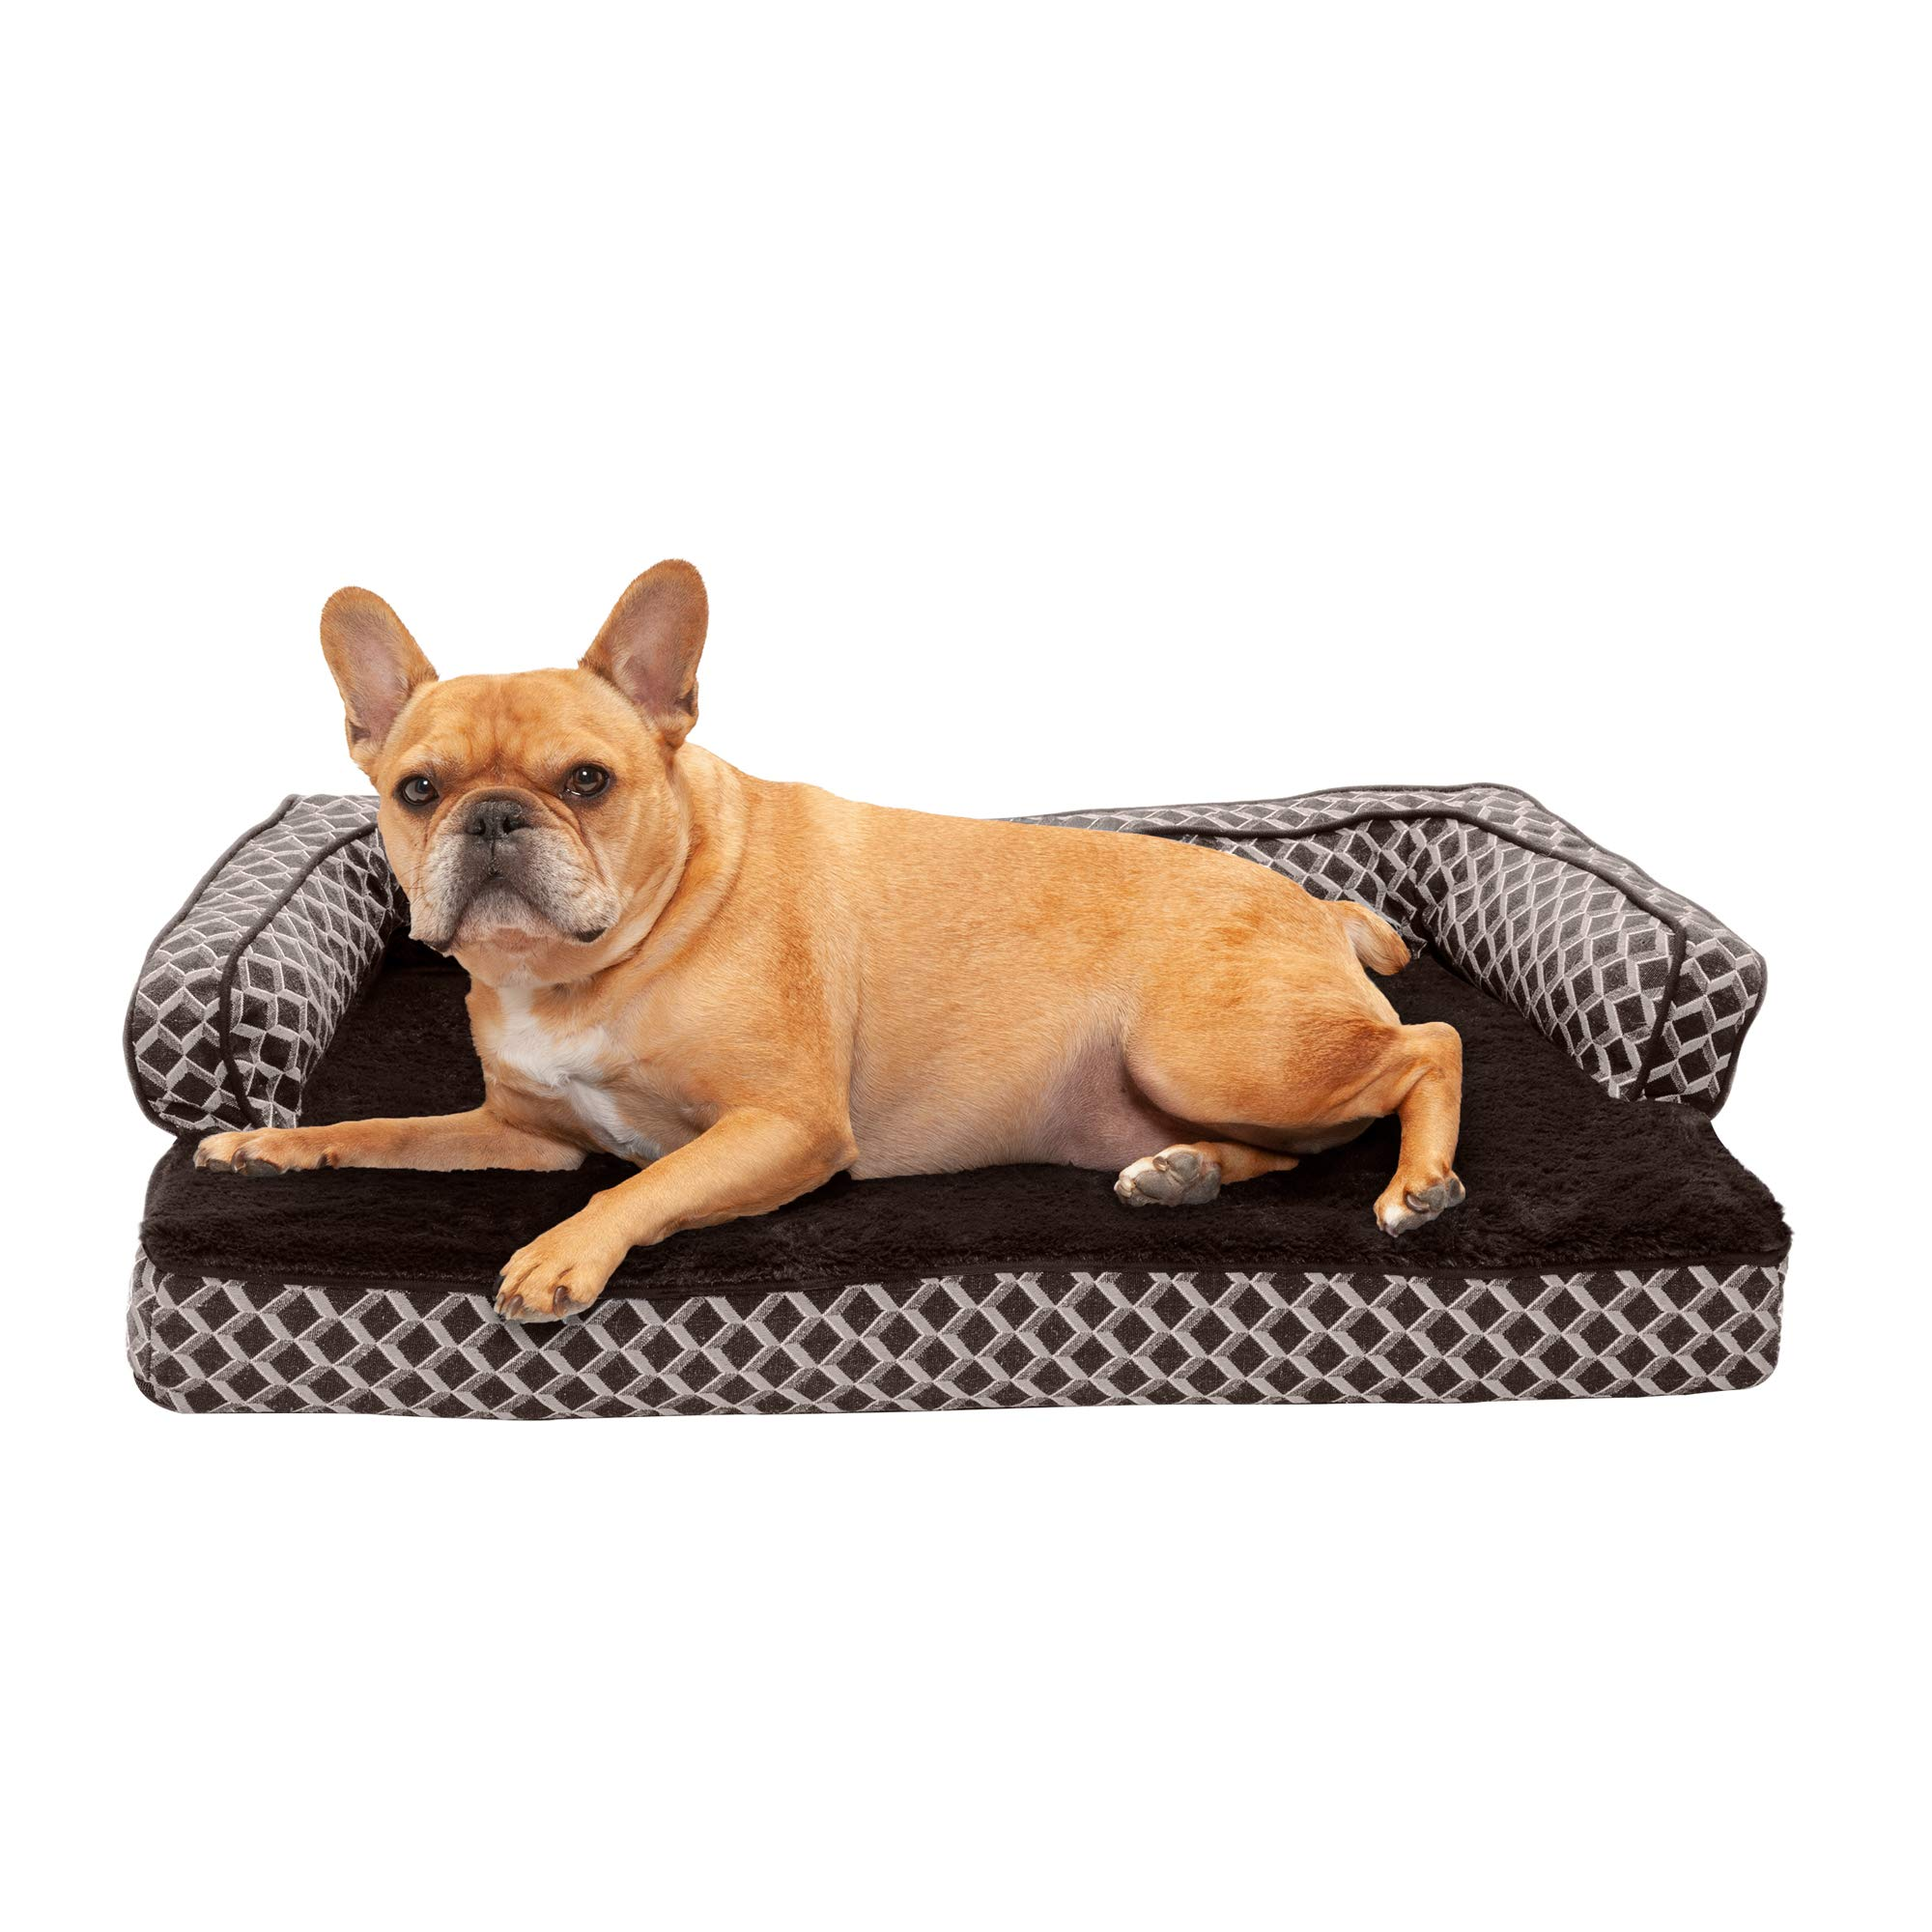 Furhaven Pet Dog Bed   Memory Foam Plush Faux Fur & Décor Comfy Couch Traditional Sofa-Style Living Room Couch Pet Bed w/ Removable Cover for Dogs & Cats, Diamond Brown, Medium by Furhaven